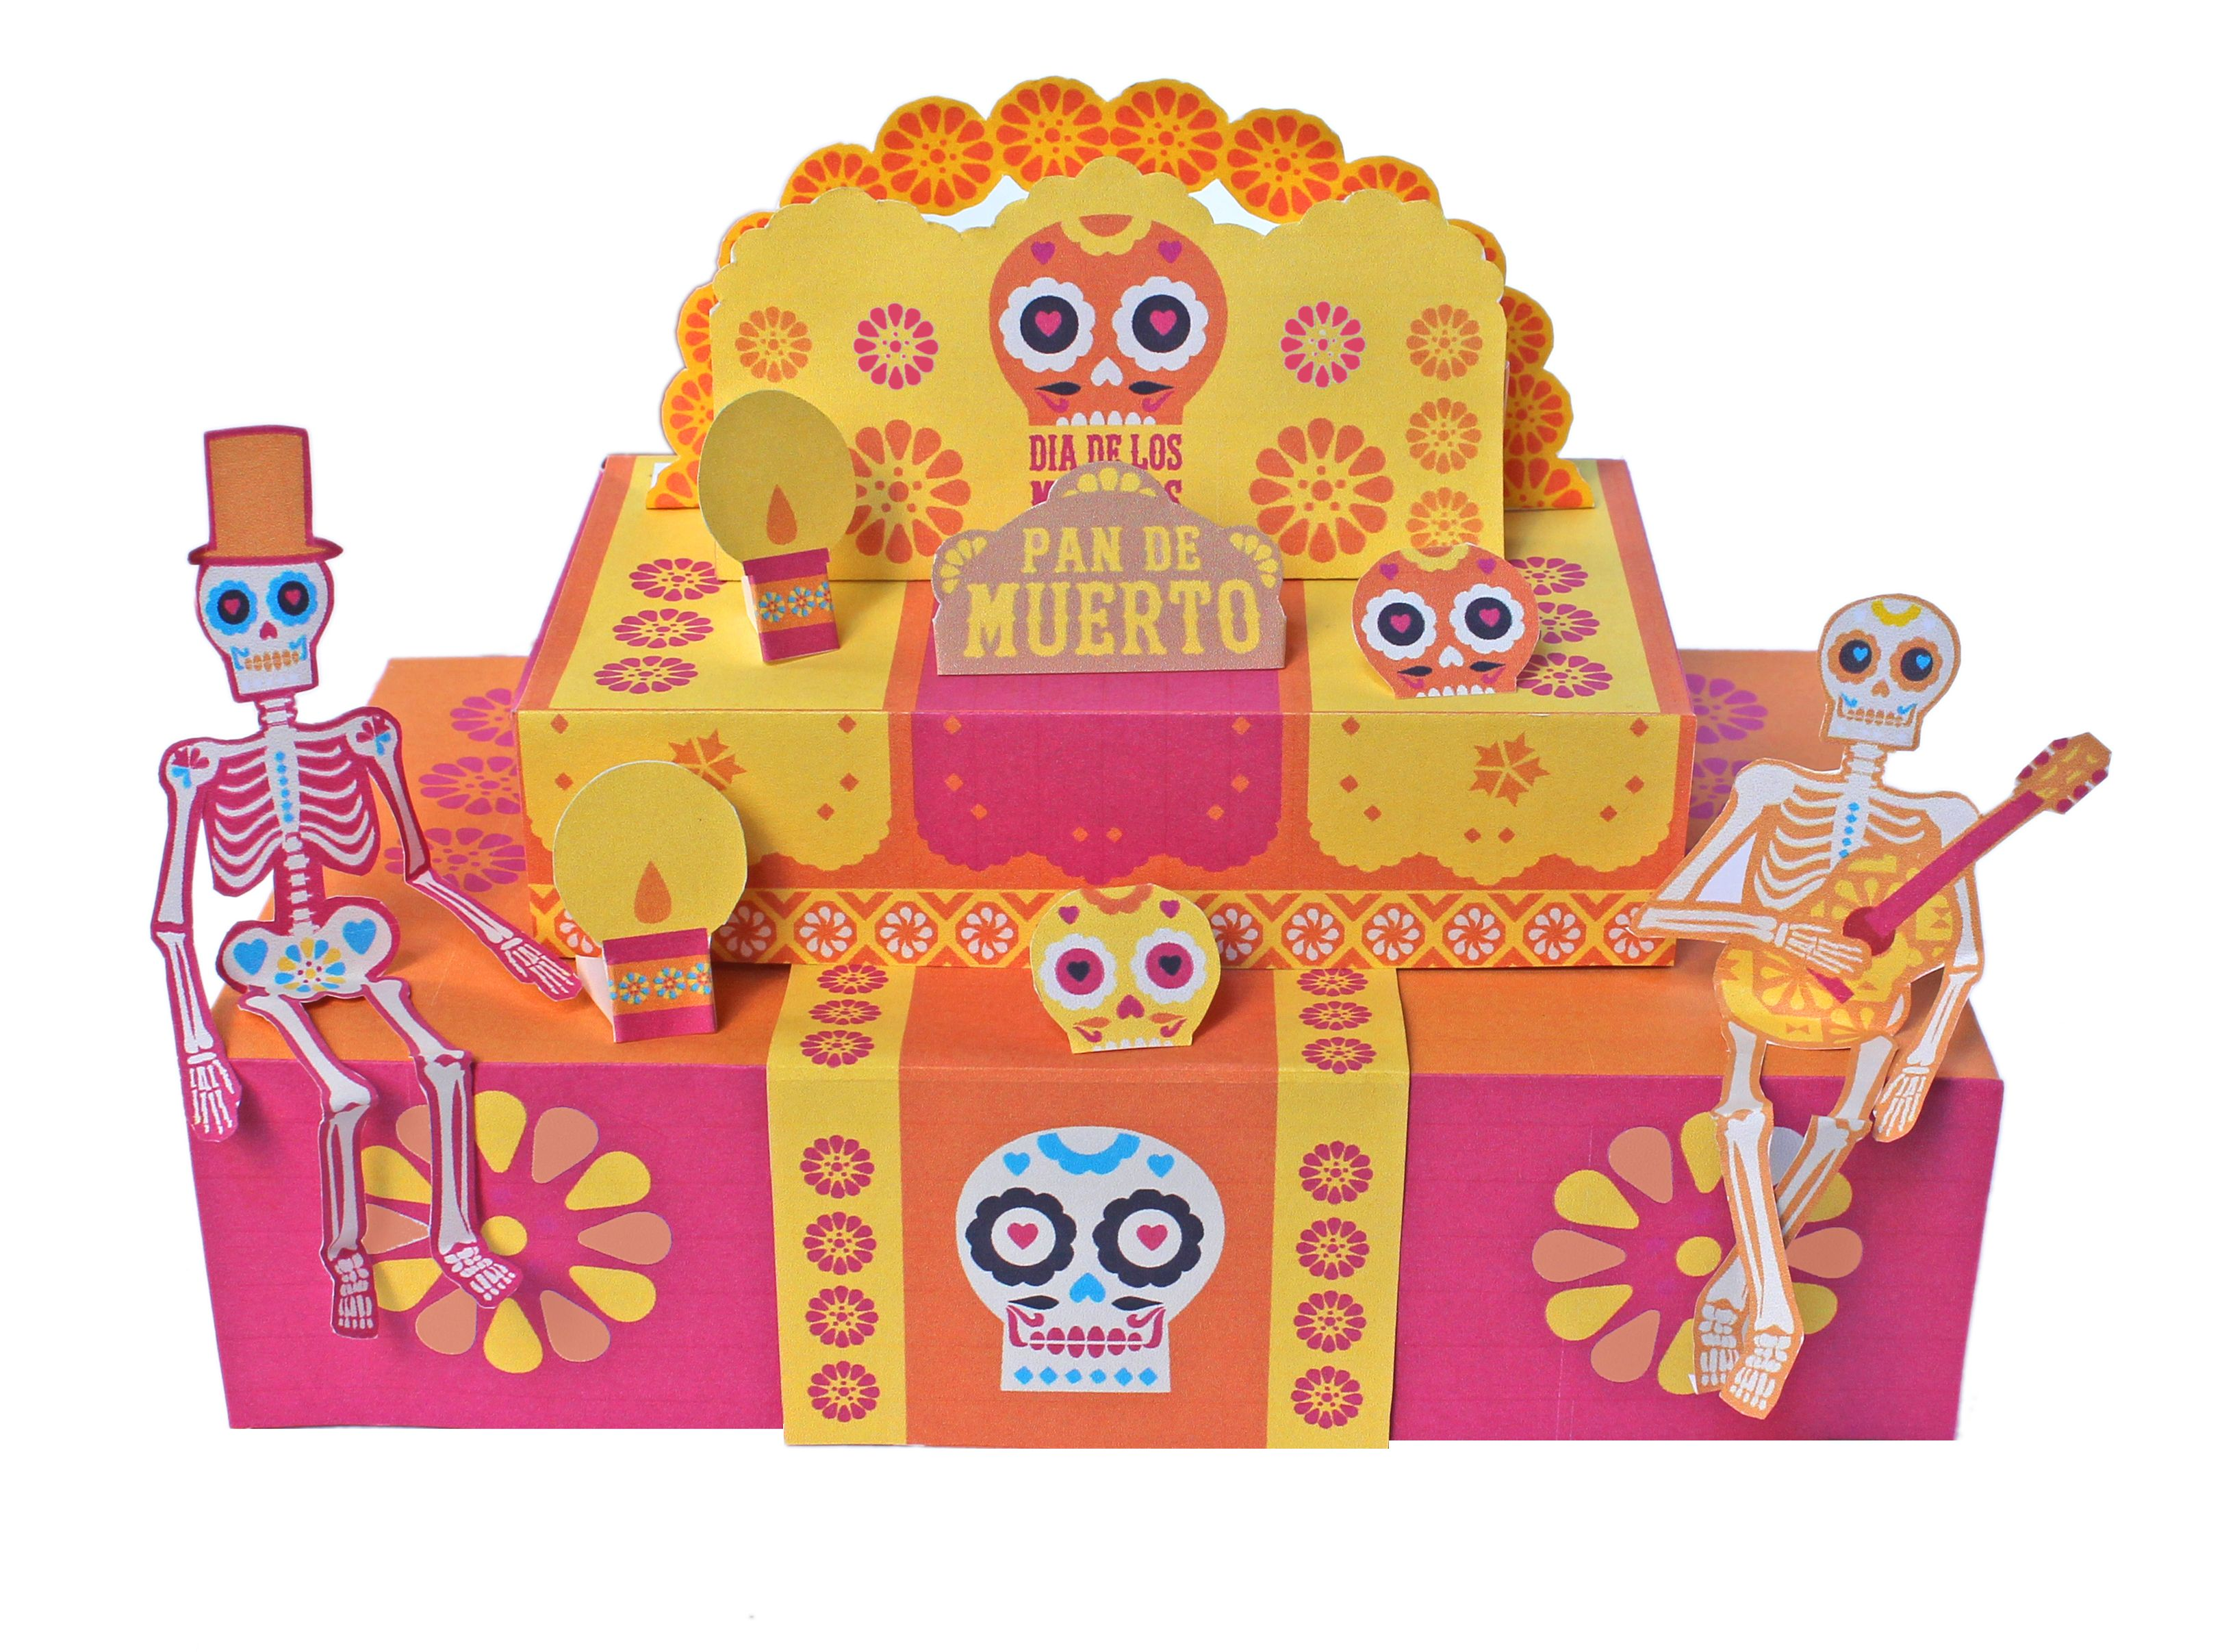 printable Day of the Dead ofrenda by Happythought www.